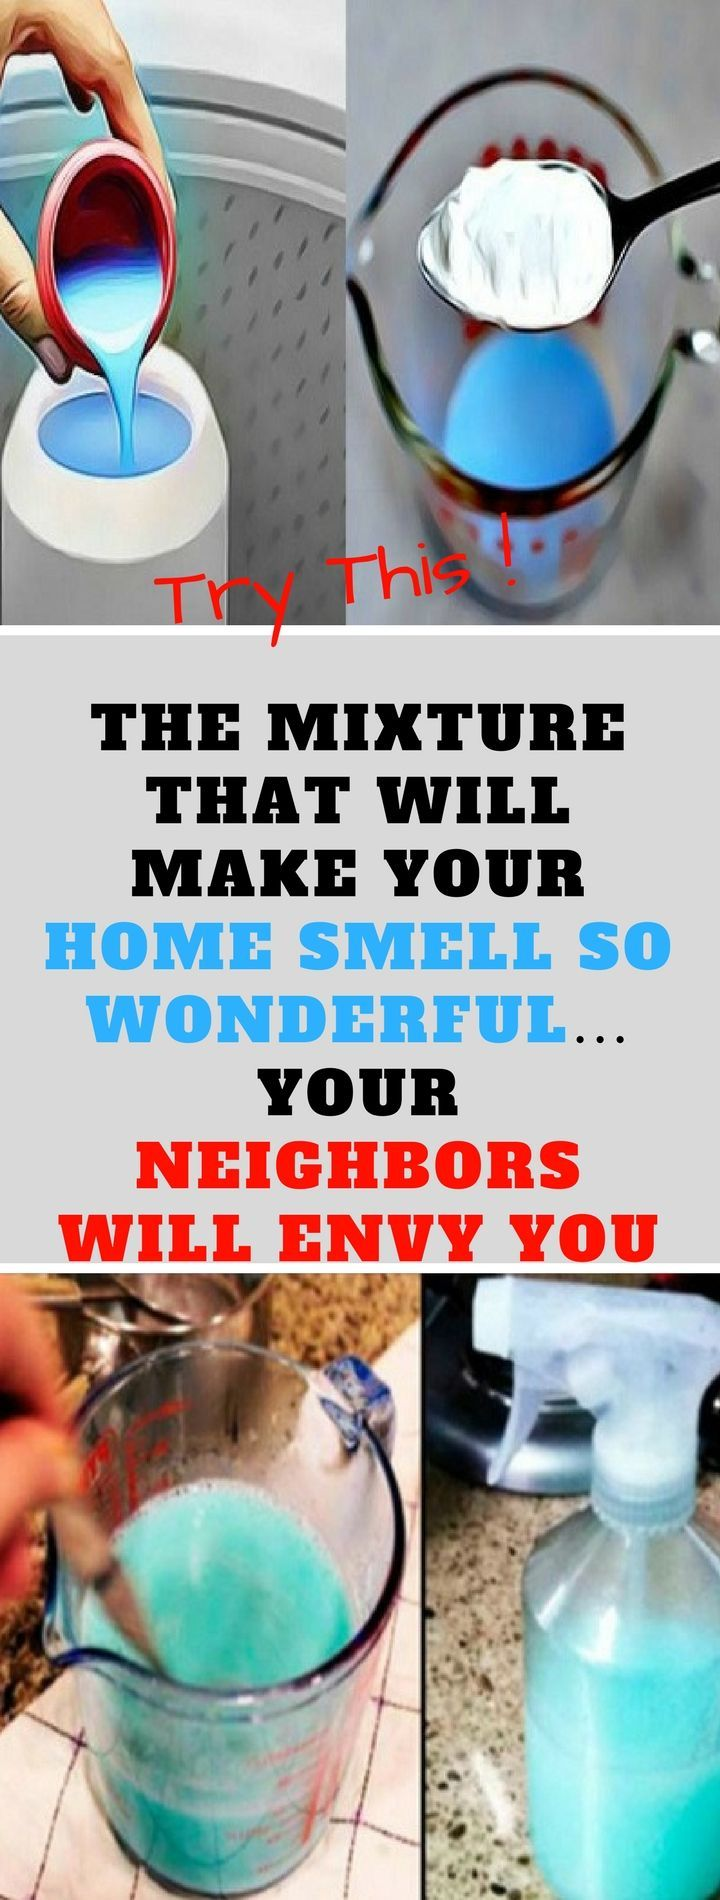 There are not many more pleasant things in life than a house that smells wonderful. A nice scent at home can boost your energy levels and relax your mind, and makes you enjoy home more.[...]